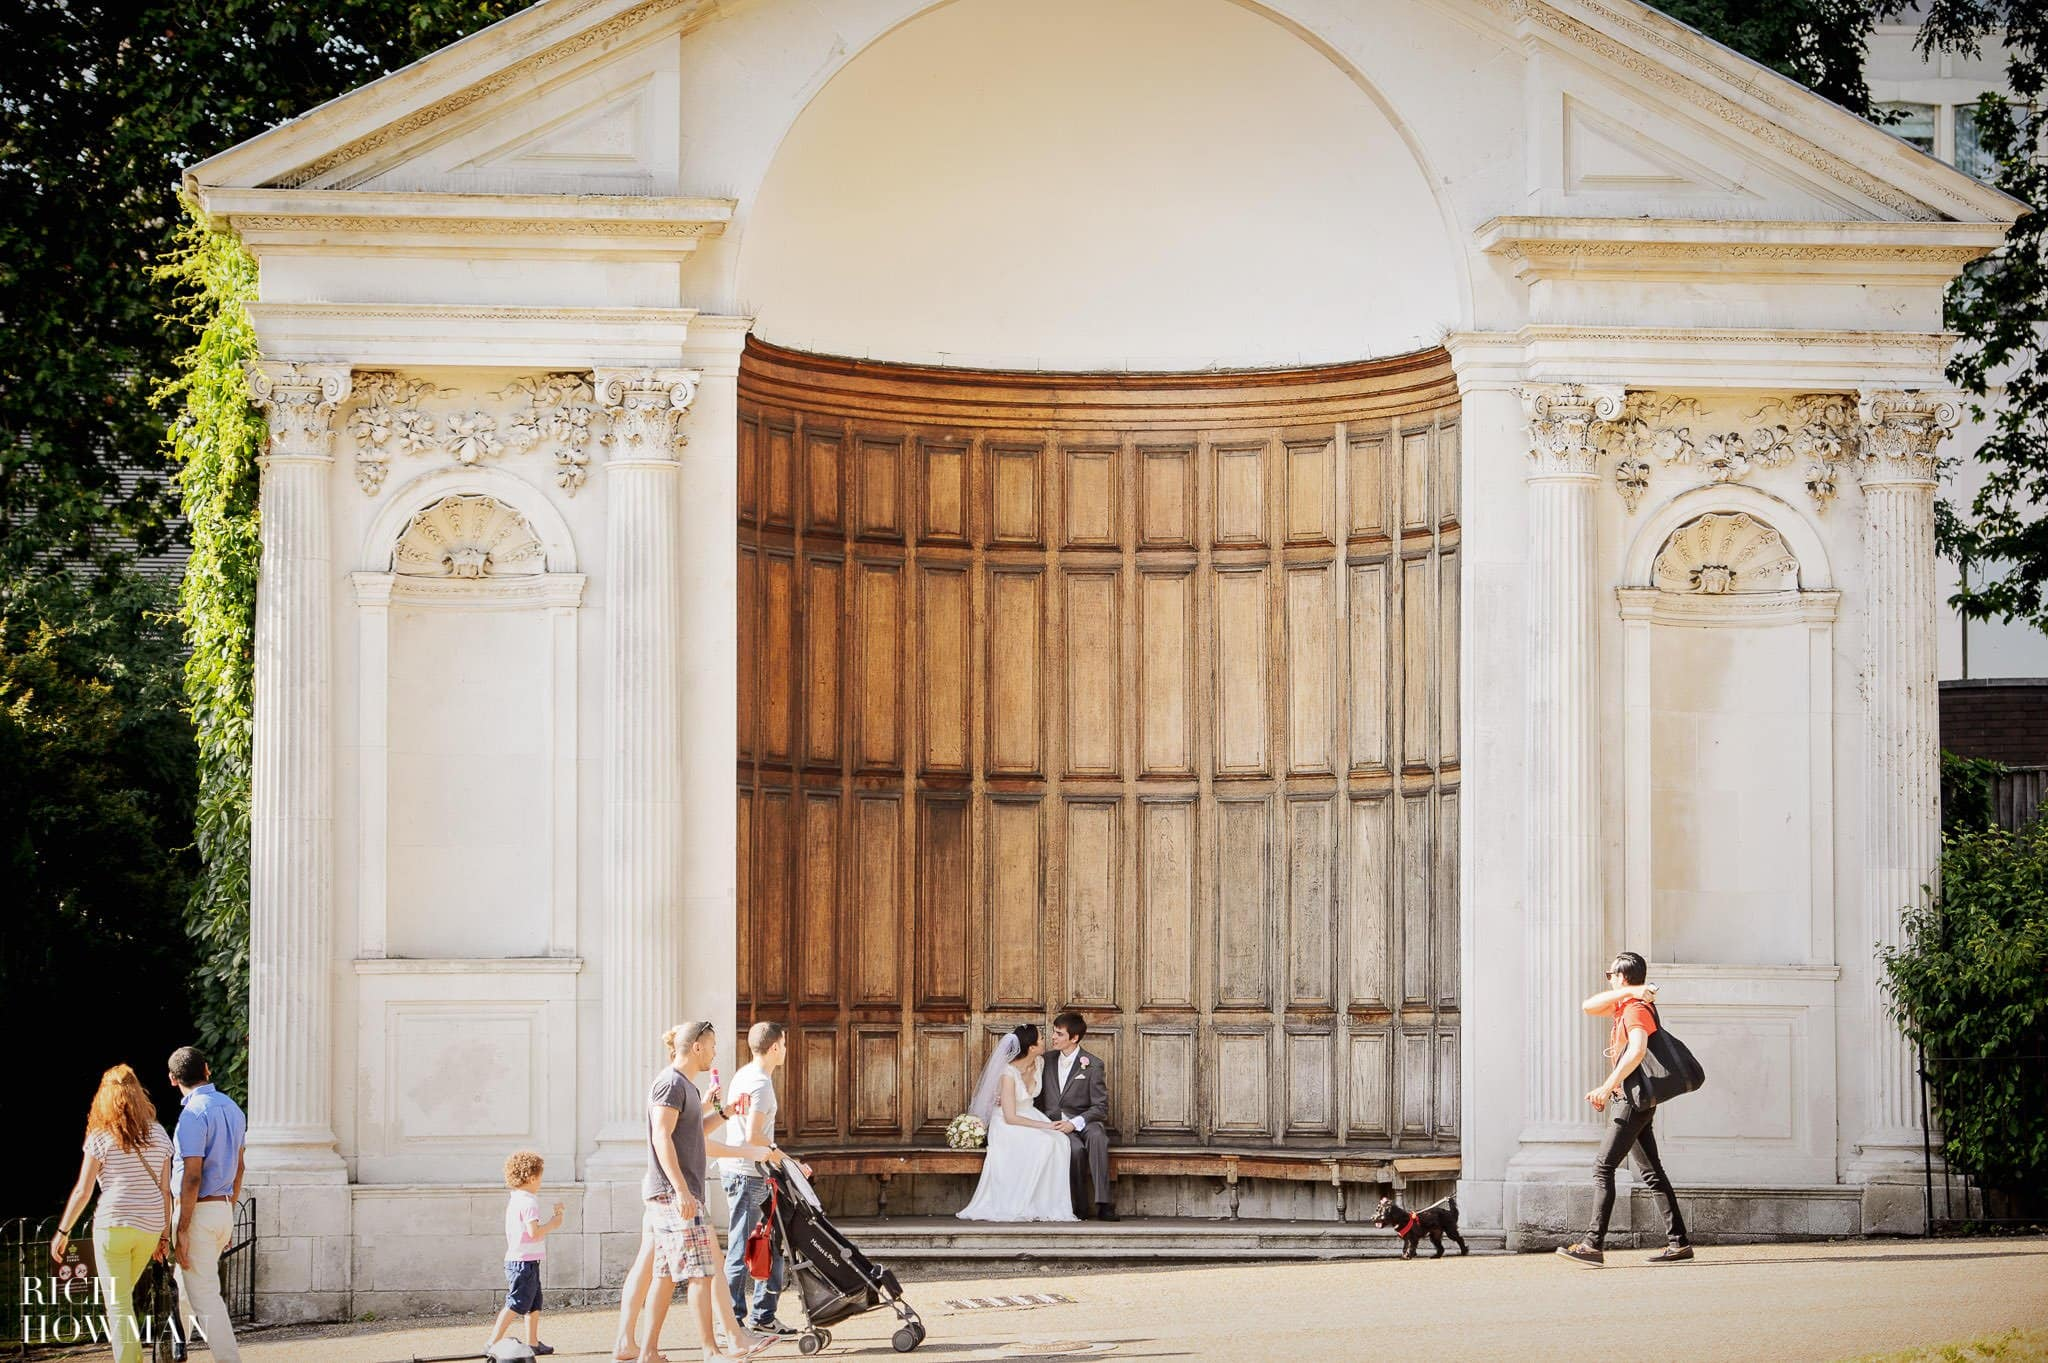 Notting Hill Wedding | Wedding Photographer London - Rich Howman 33